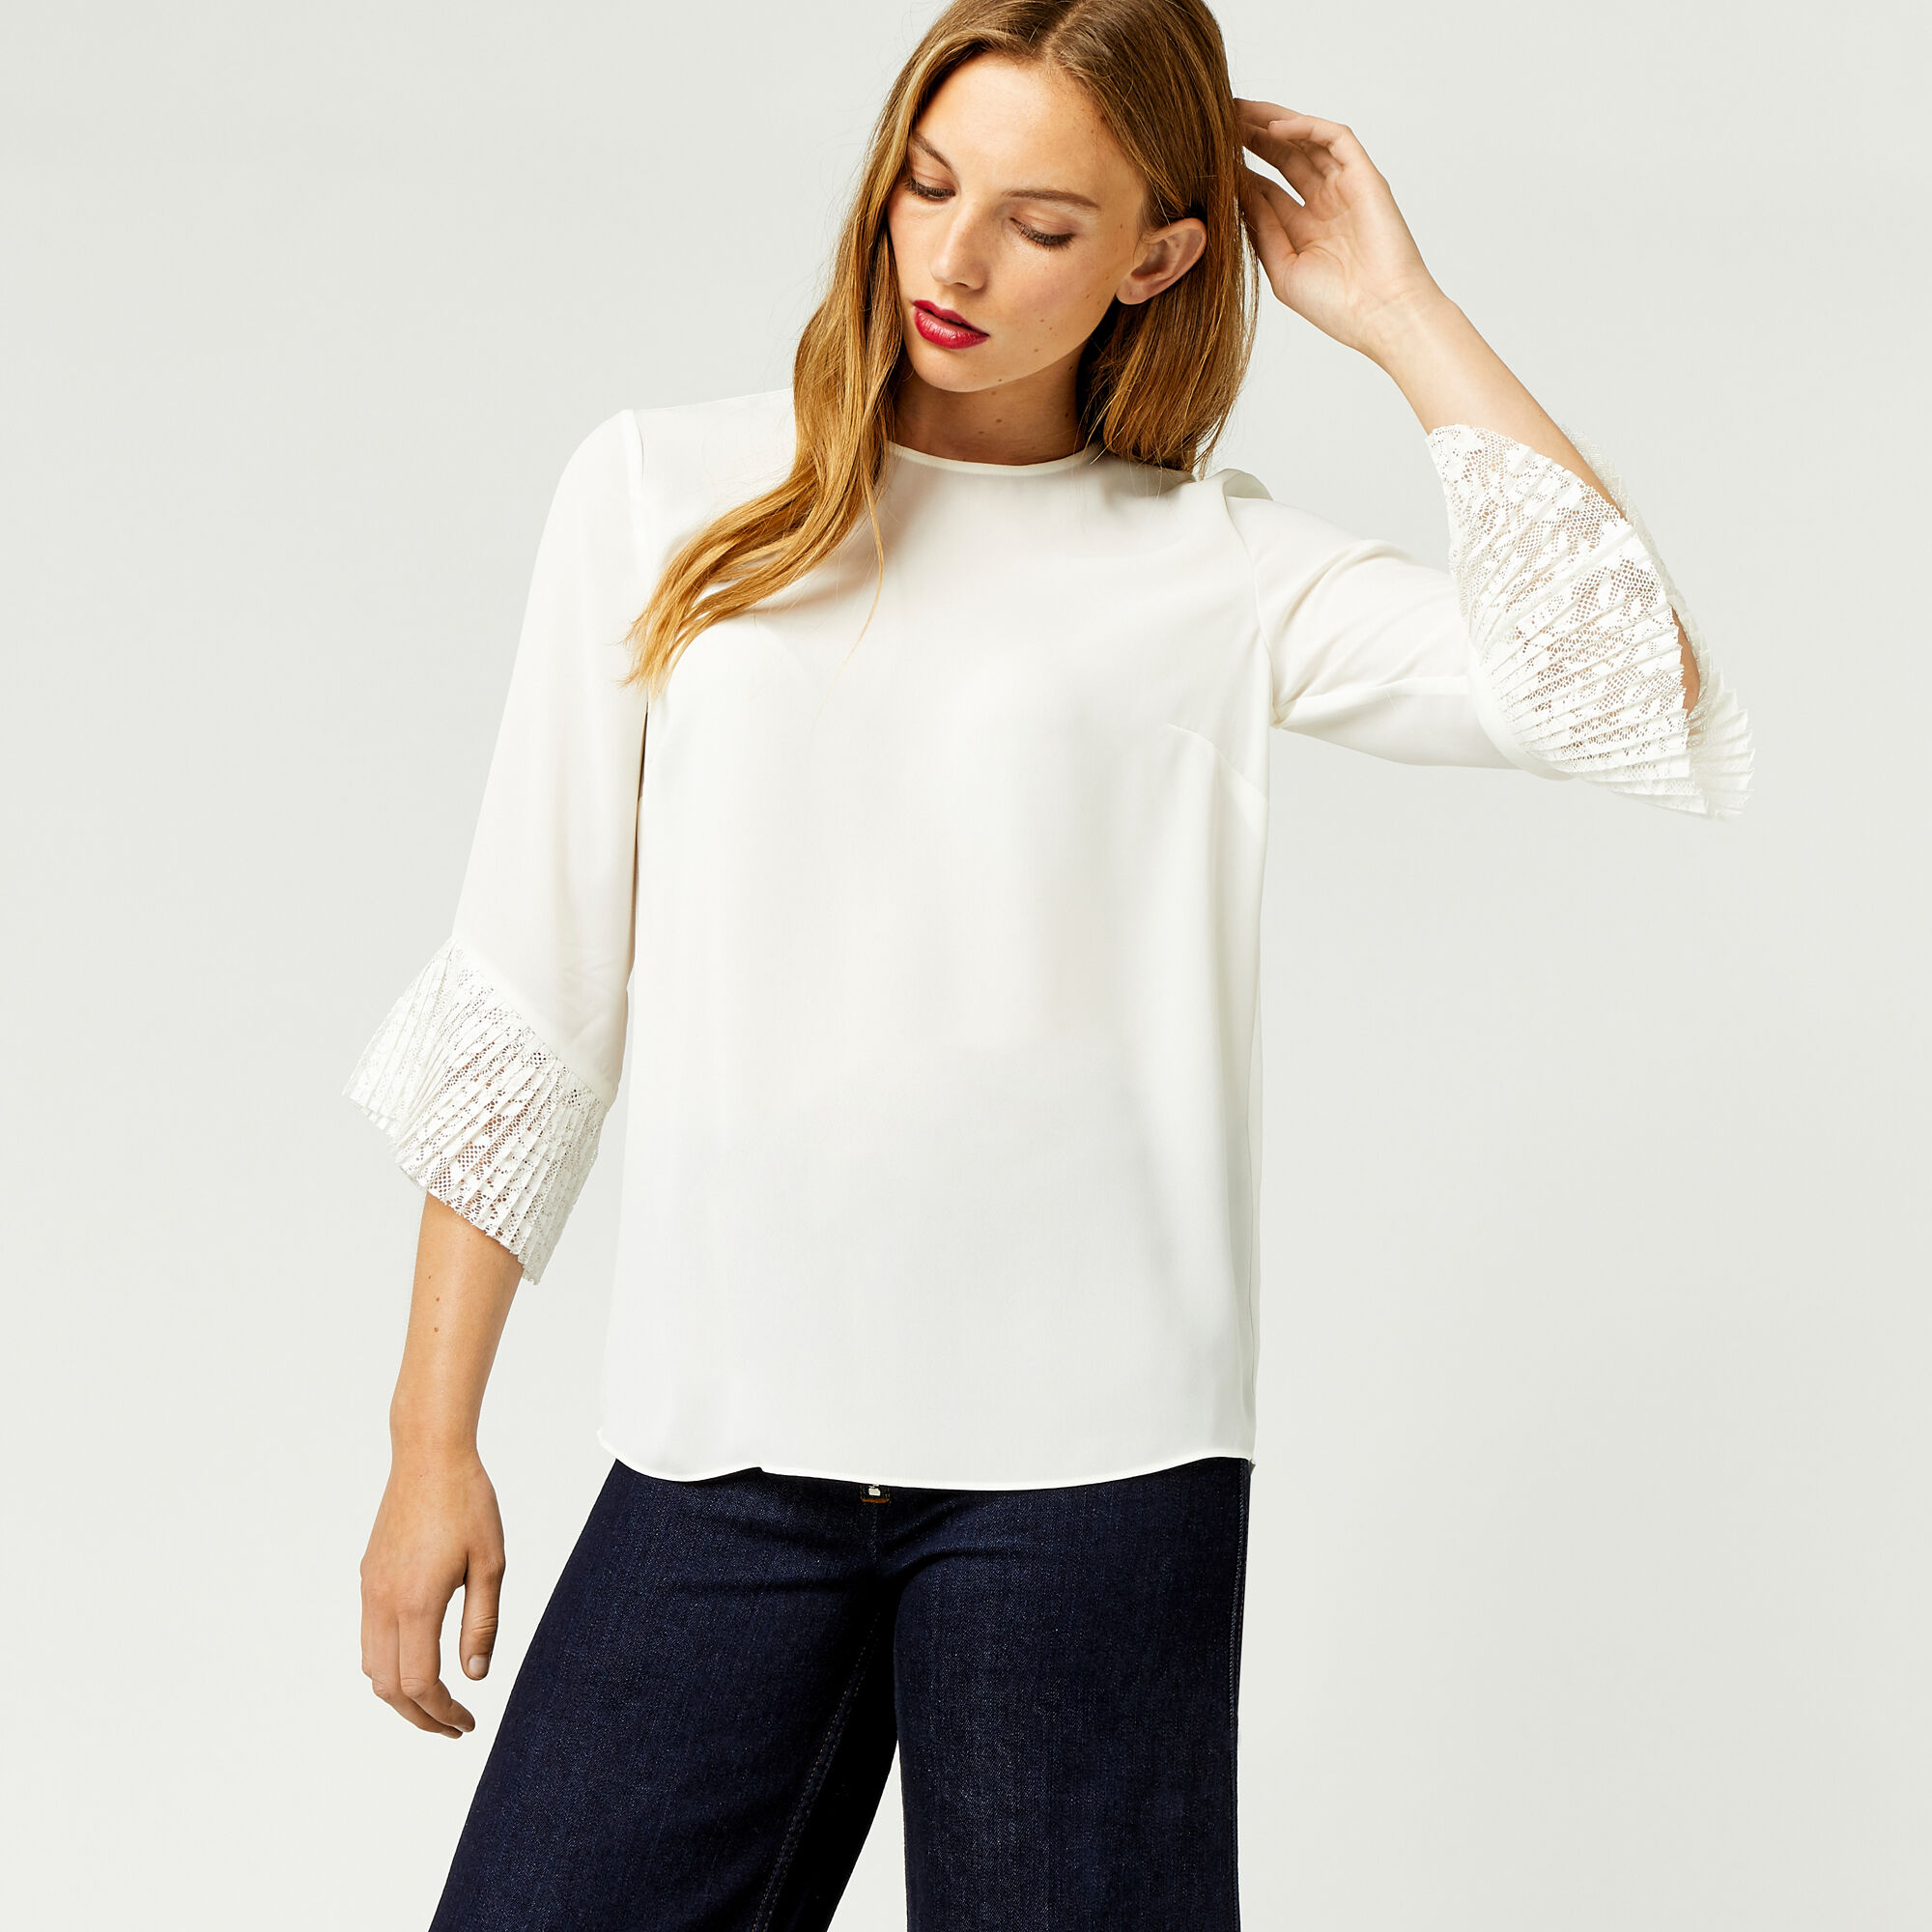 Warehouse, LACE CUFF TOP Cream 1